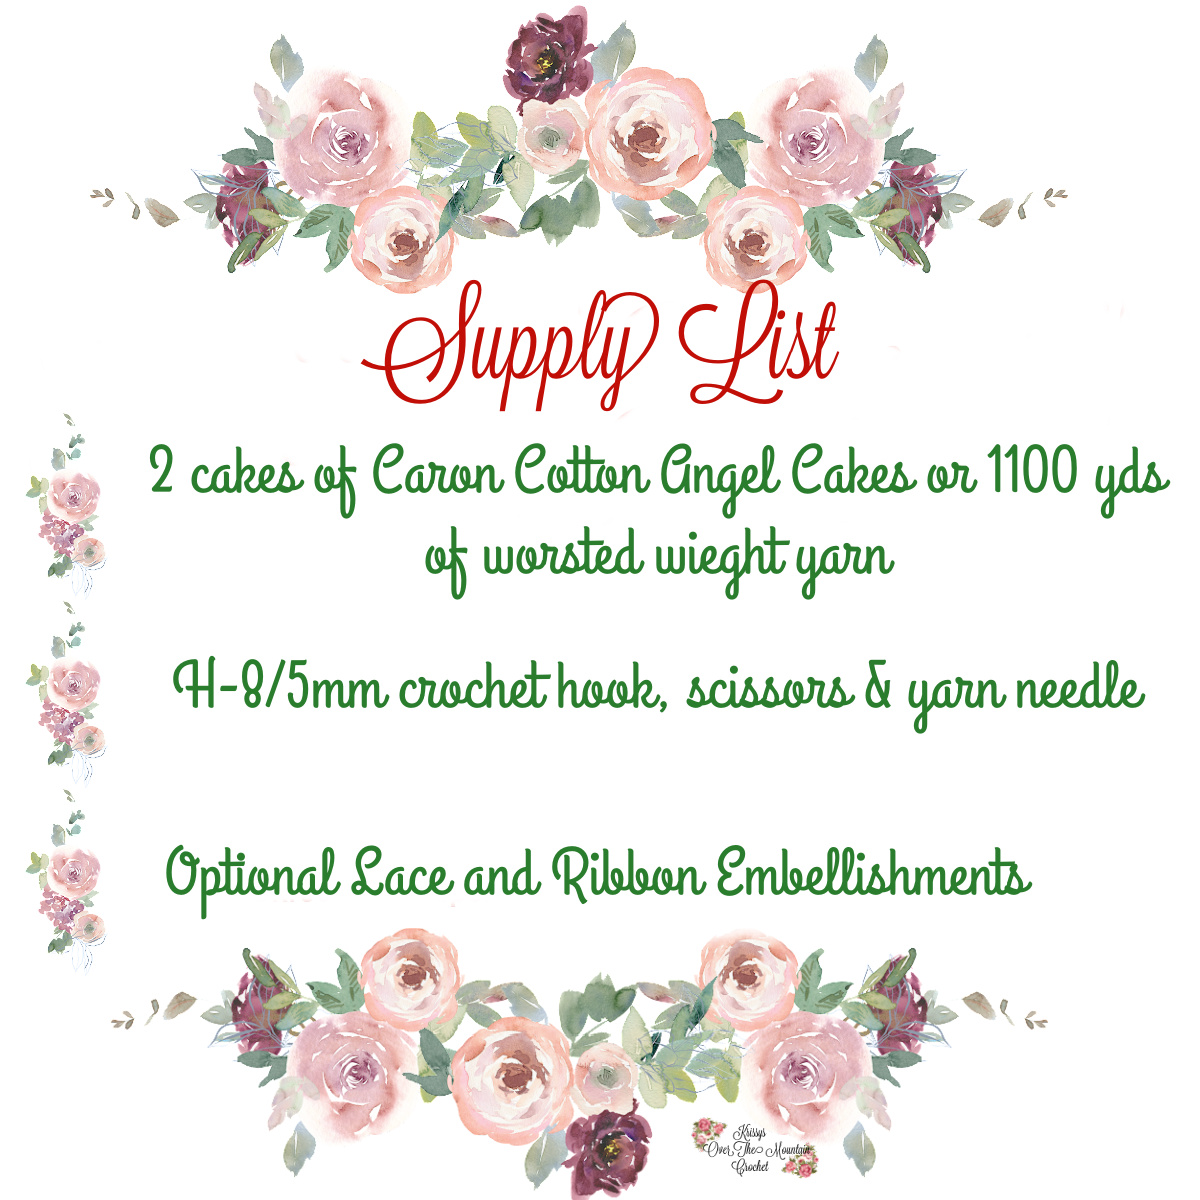 Supply List, 2 cakes of Caron Cotton Angel Cakes, or 1100 yds of worsted weight yarn, H-8/5.00 mm crochet hook, scissors and yarn needle. Optional lace and ribbon embellishments.